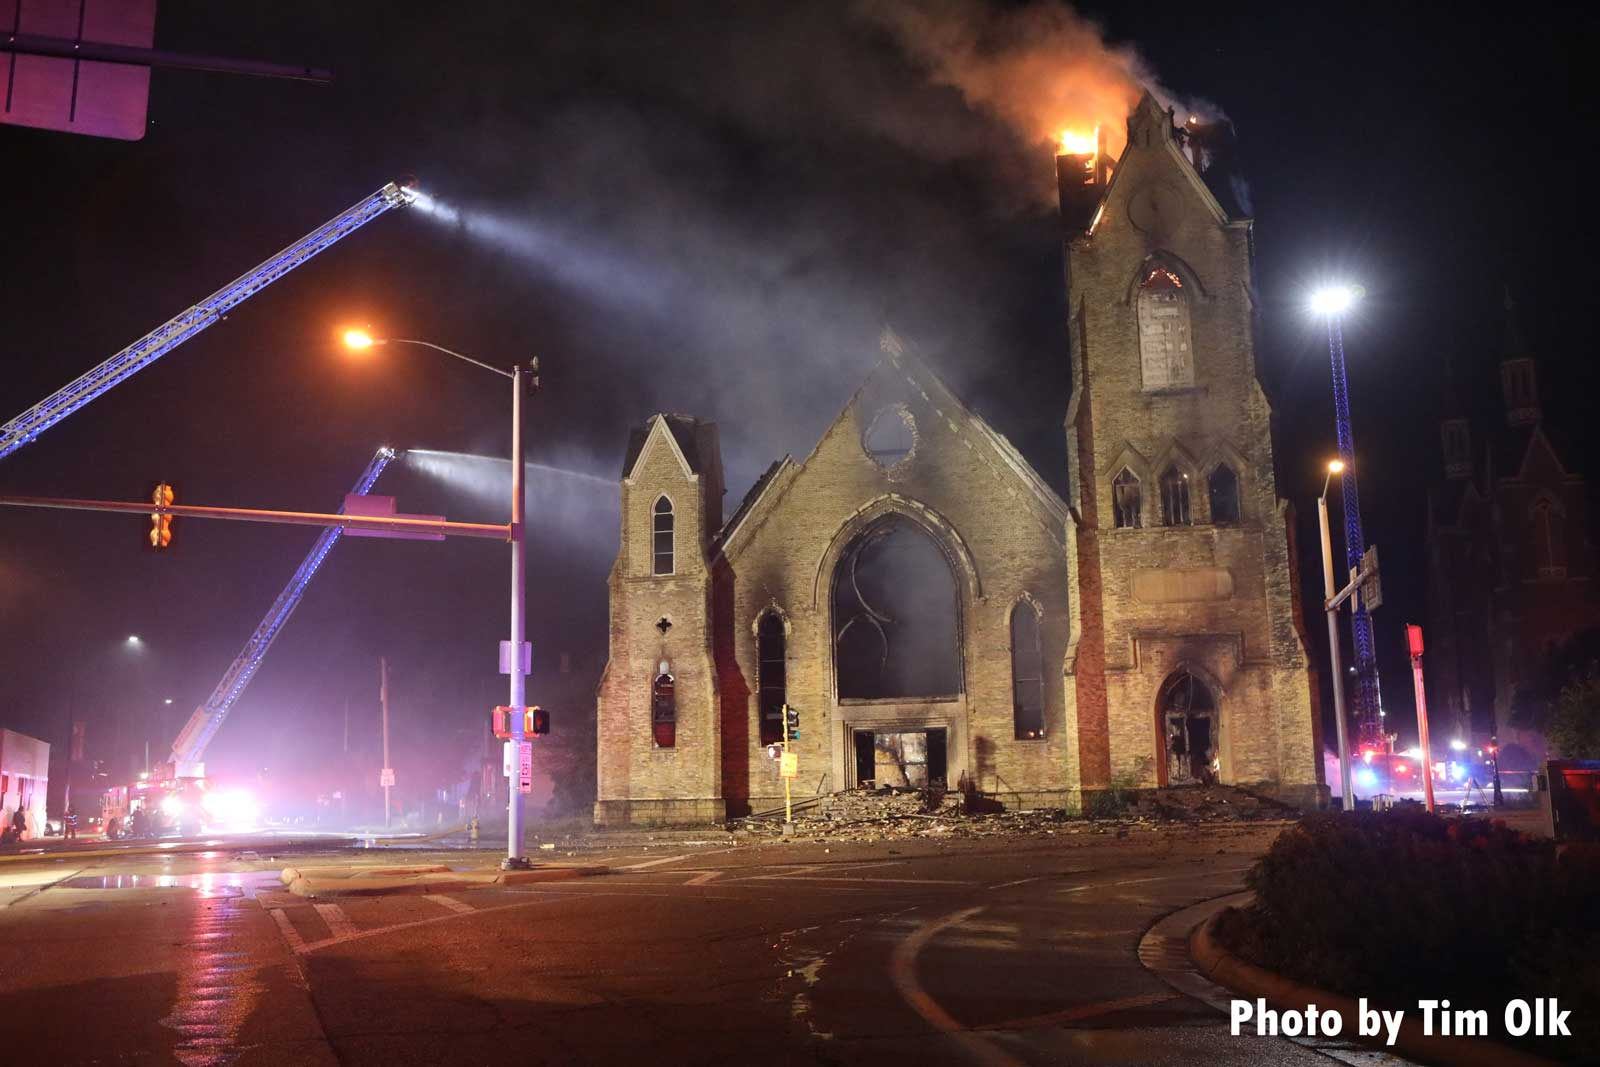 Multiple elevated streams aimed at church fire